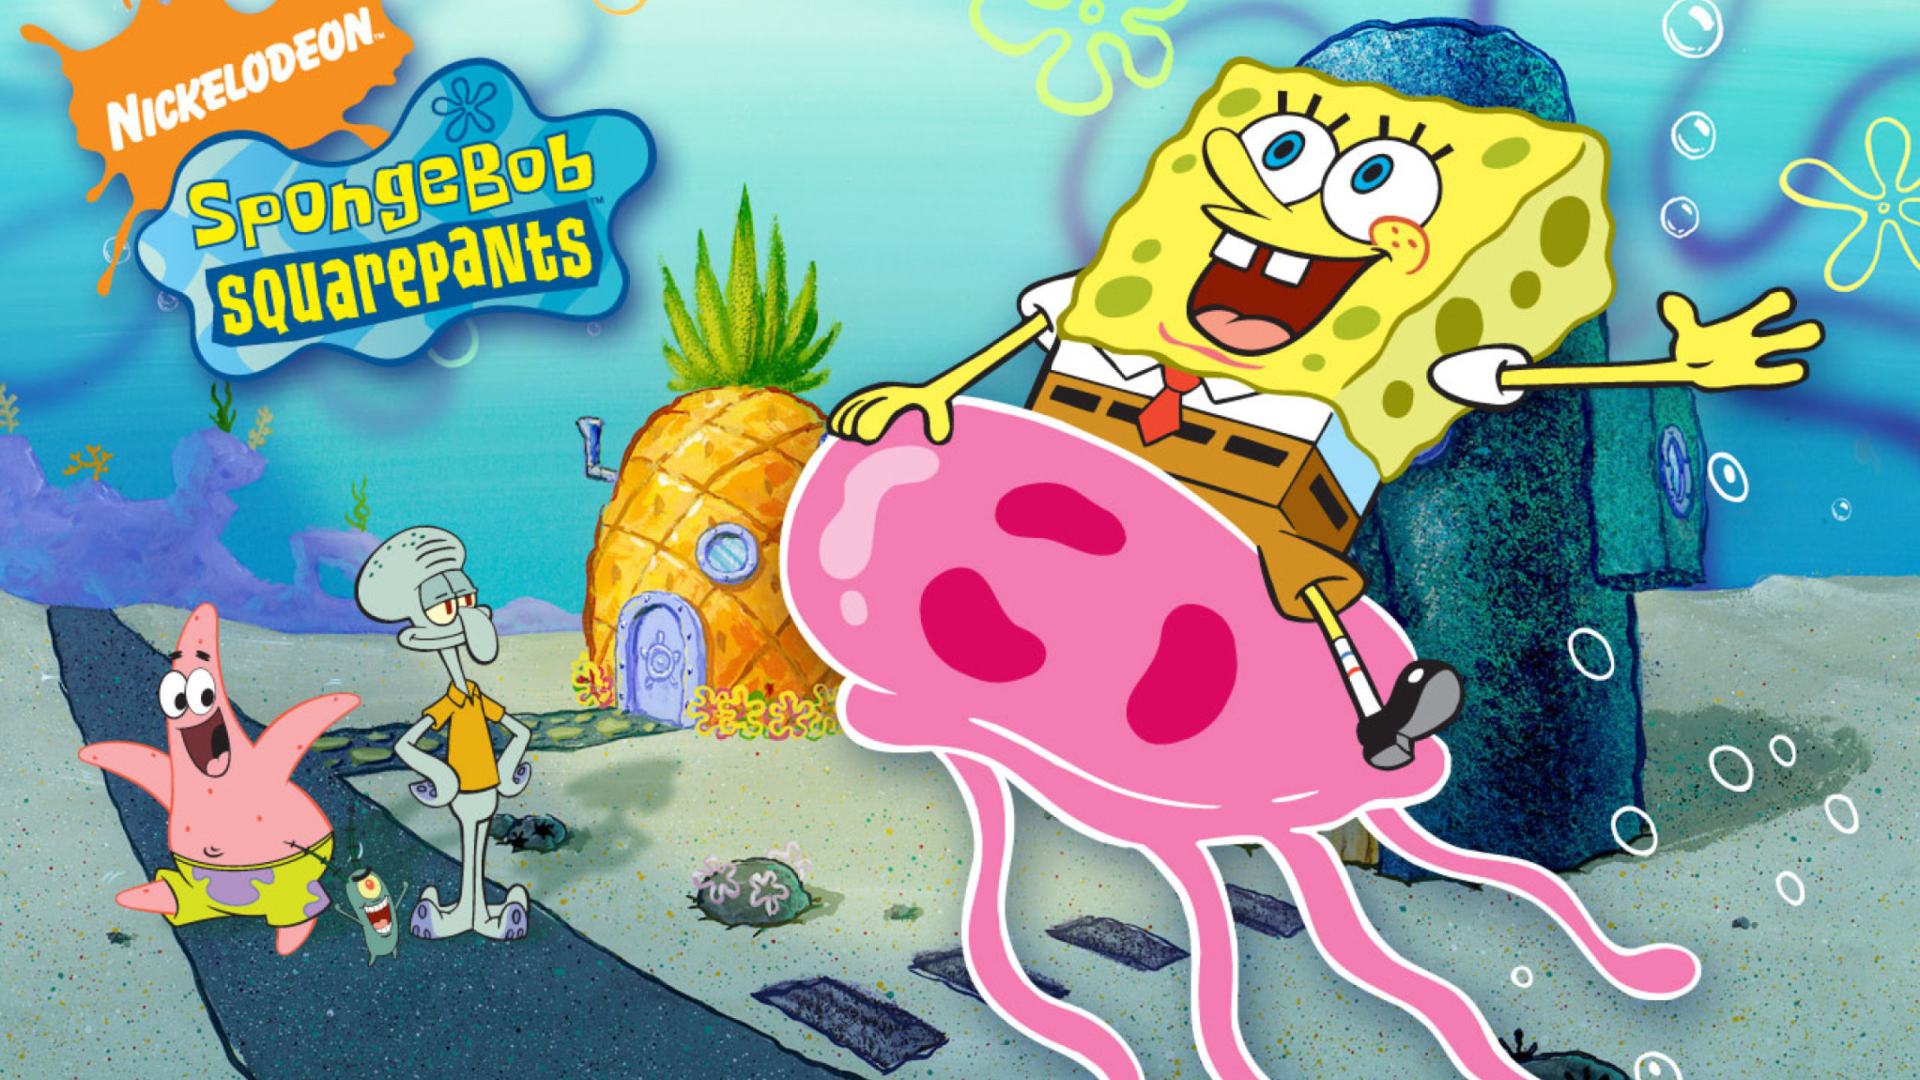 Nickelodeon Spongebob Squarepants Wallpaper For 1920x1080